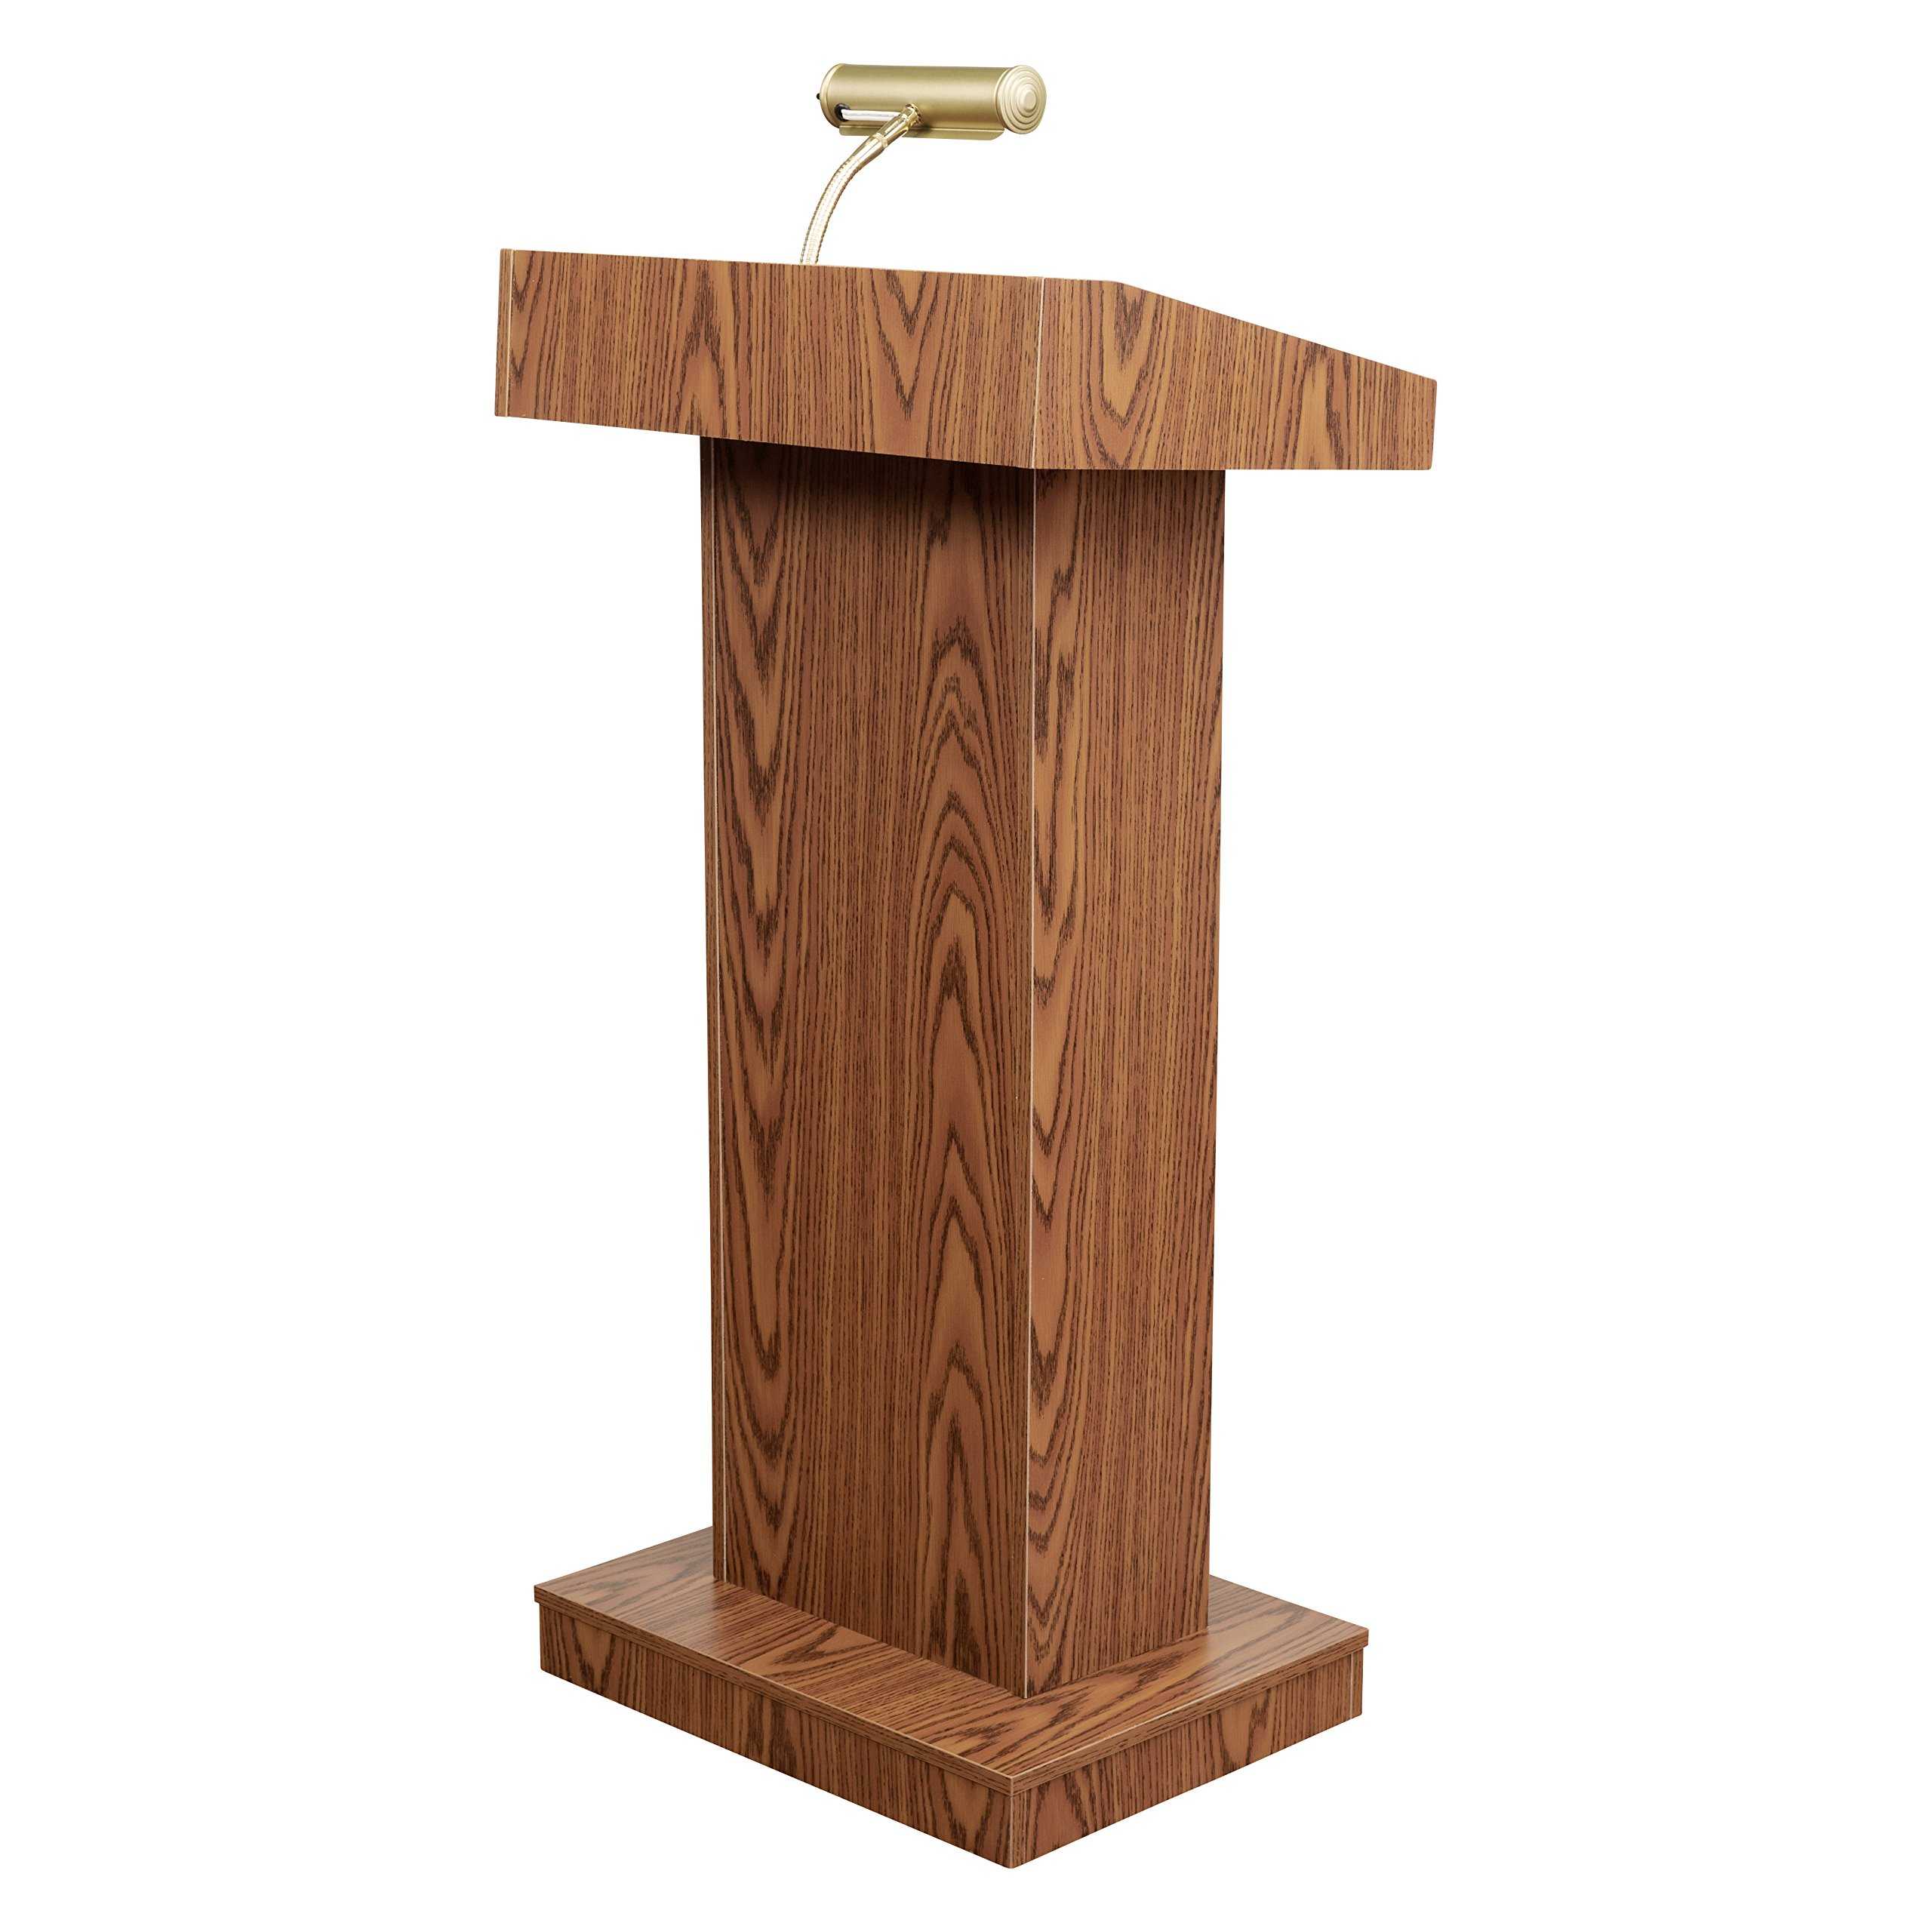 Oklahoma Sound 810-MO The Orator Adjustable Height Lectern, Medium Oak